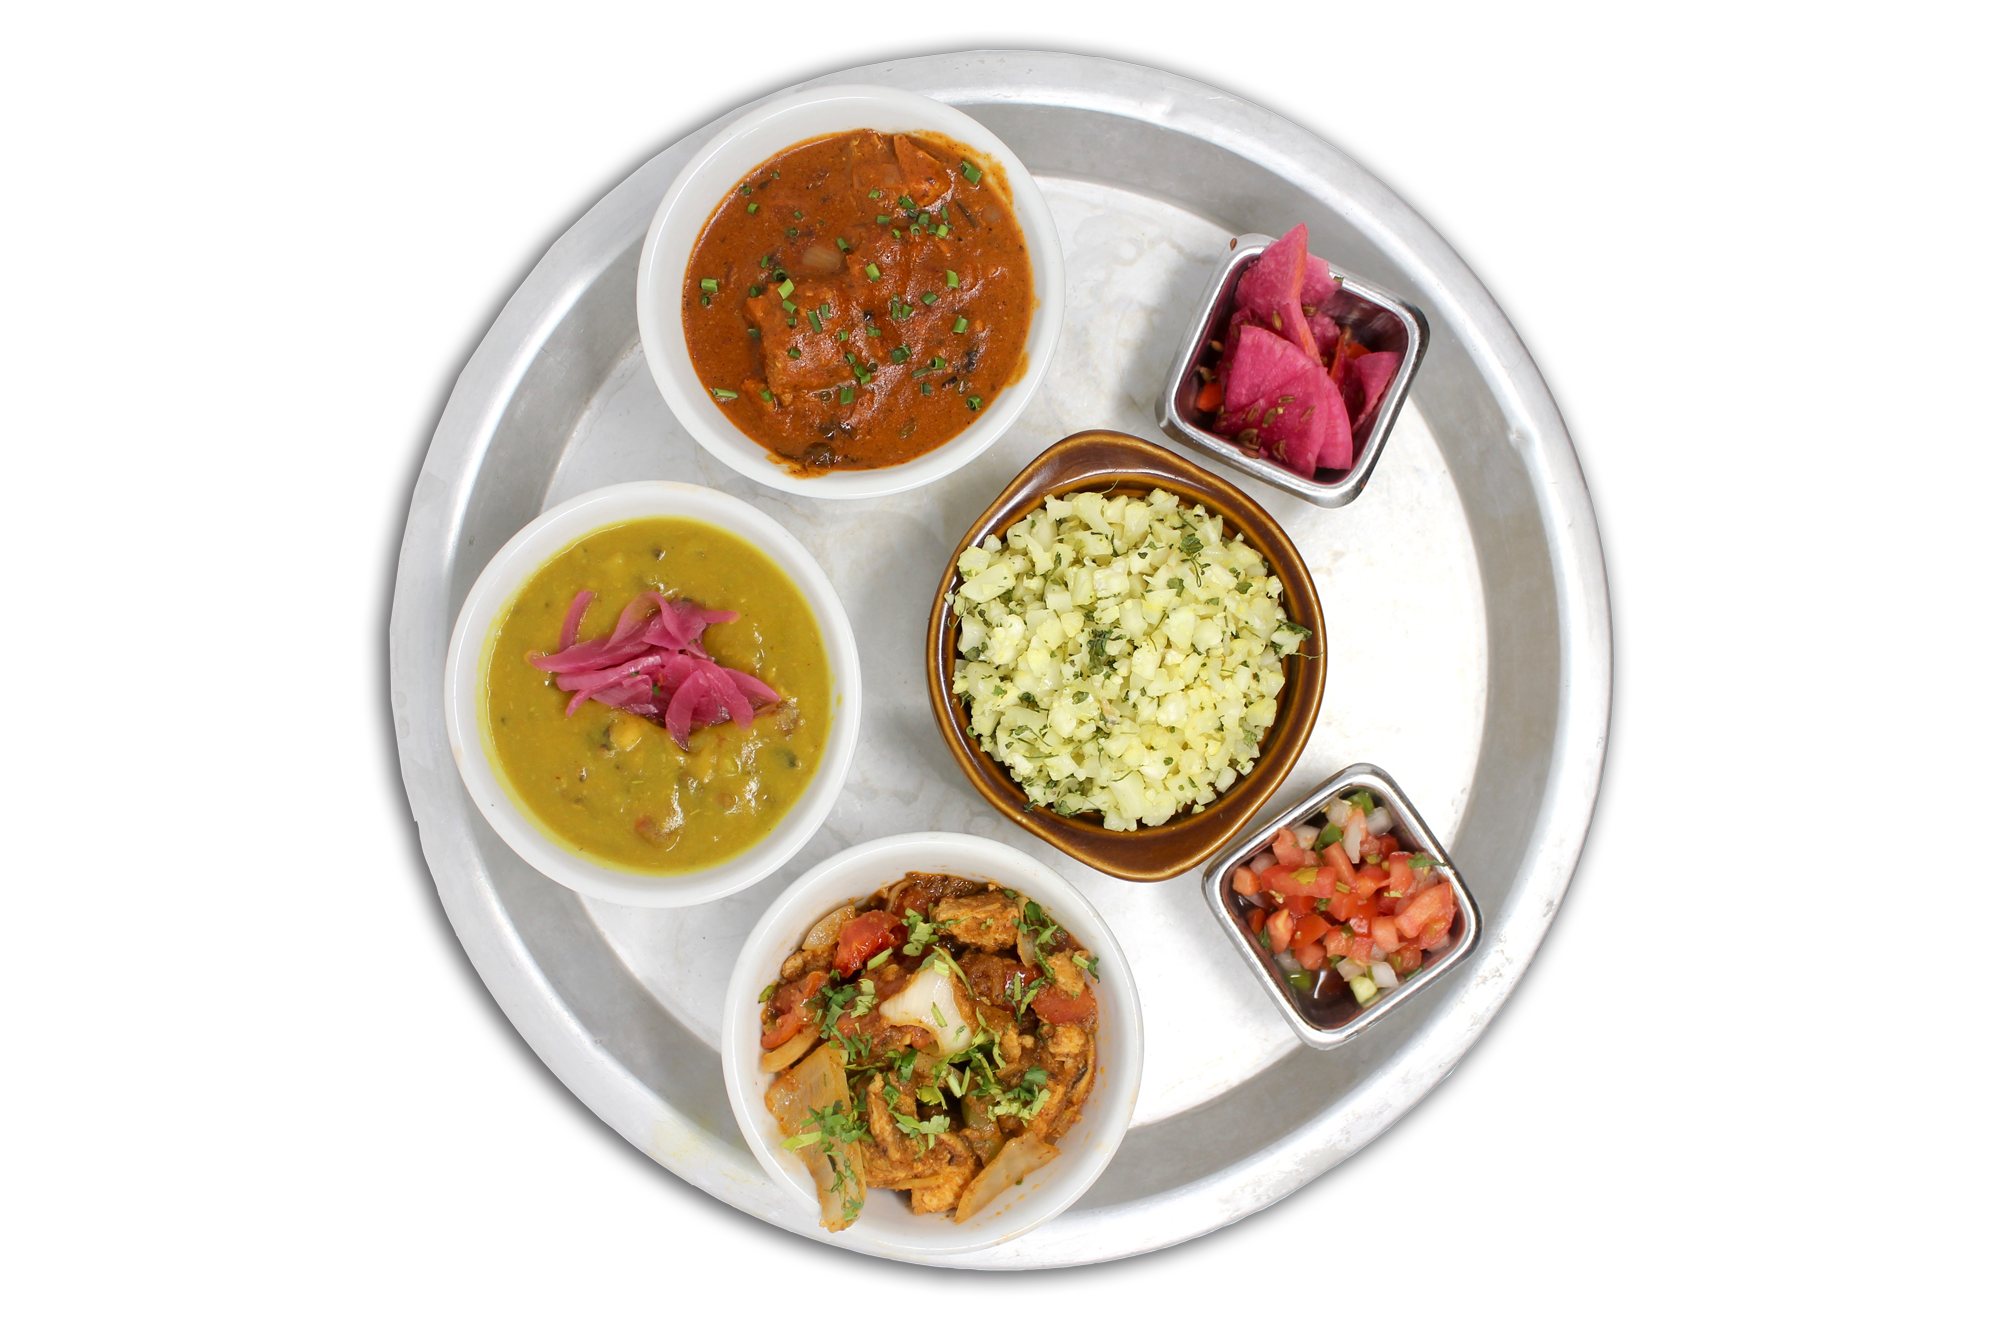 LITE THALI   riced cauliflower, daal lentils, kadhai chicken or hungry planet plant protein (V), chicken or paneer (VG) tikka masala, pico & pickles